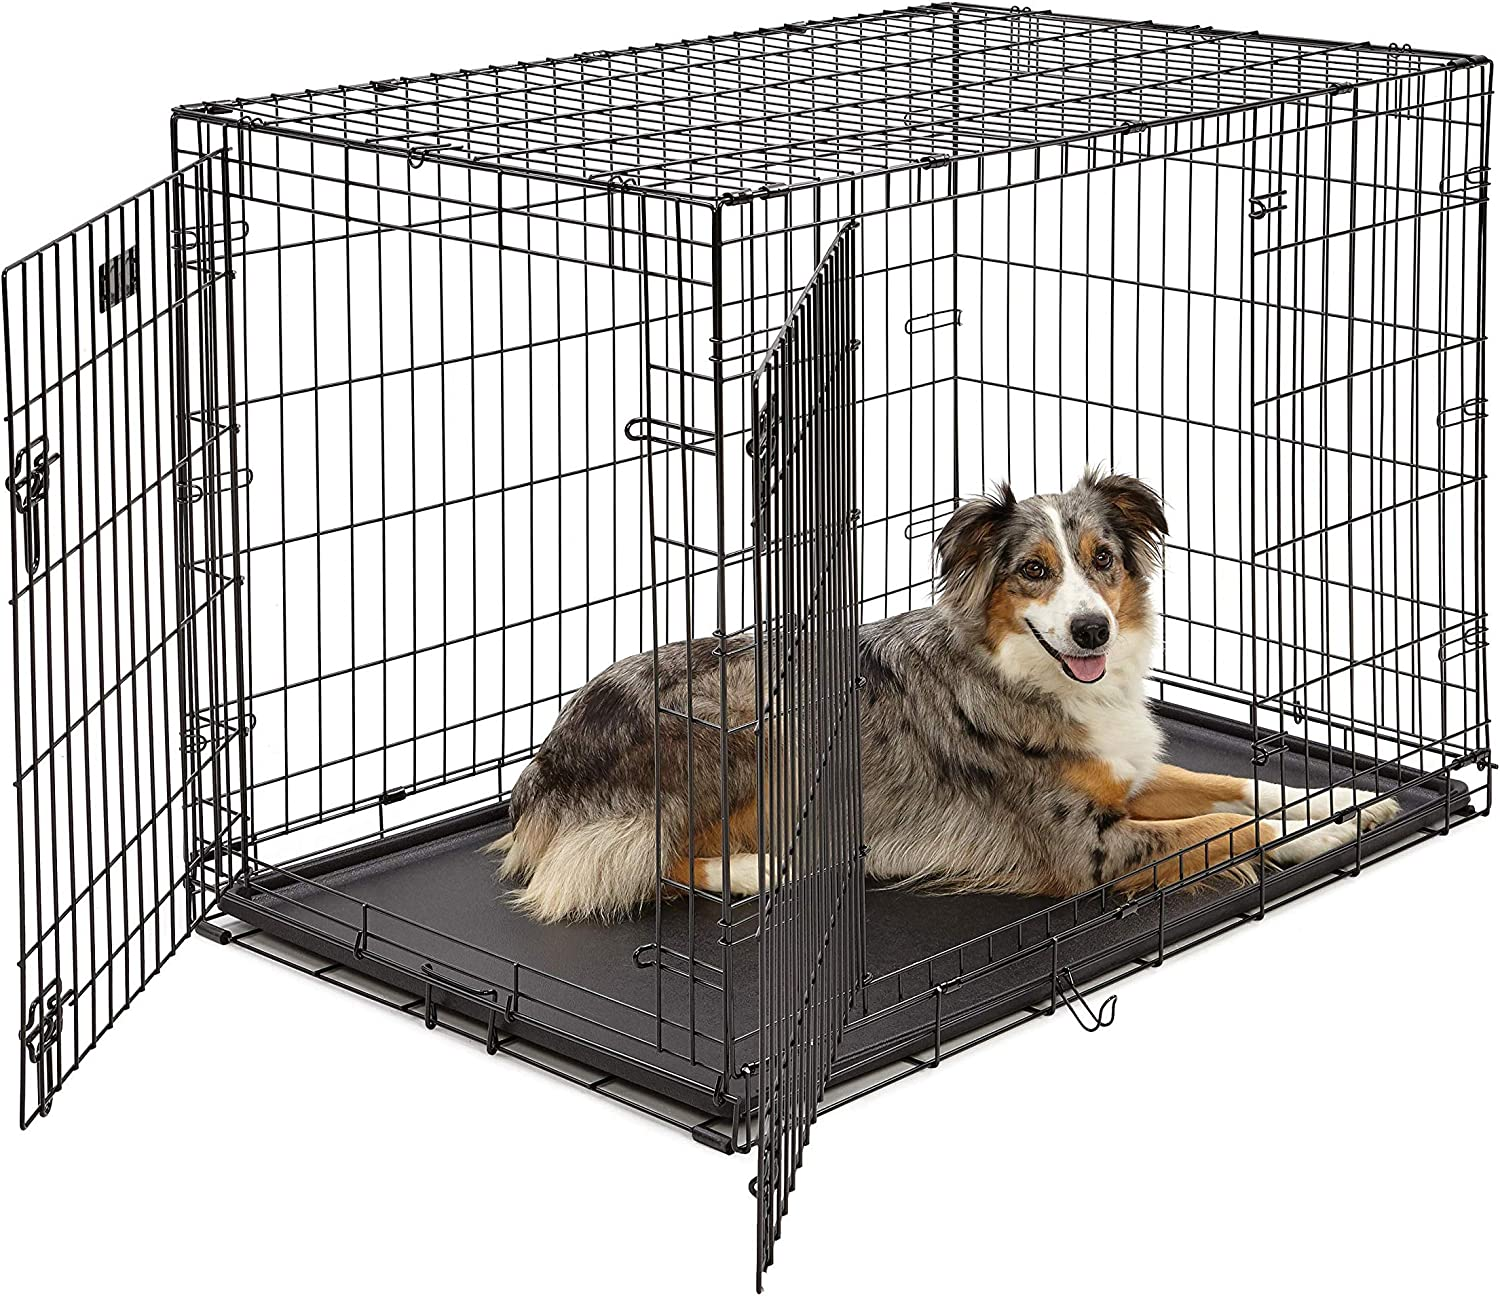 Amazon Com Large Dog Crate 1542ddu Midwest Icrate Double Door Folding Metal Dog Crate Large Dog Black Pet Kennels Pet Supplies